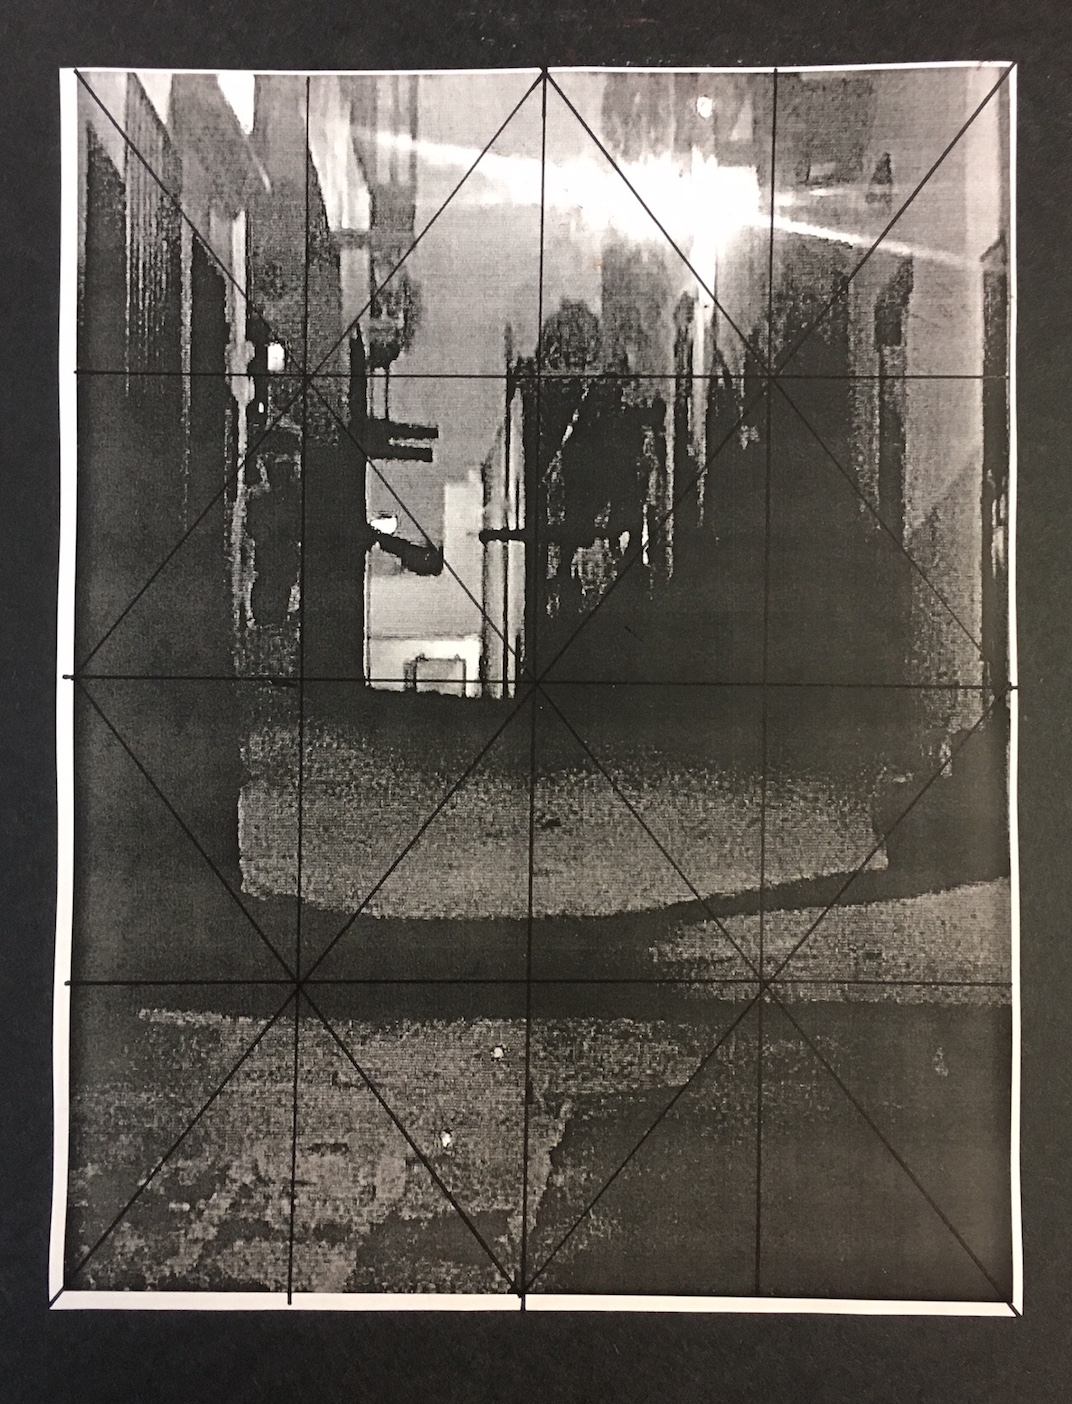 Chris Ivers: Step 10. The grid drawn on the black and white photo